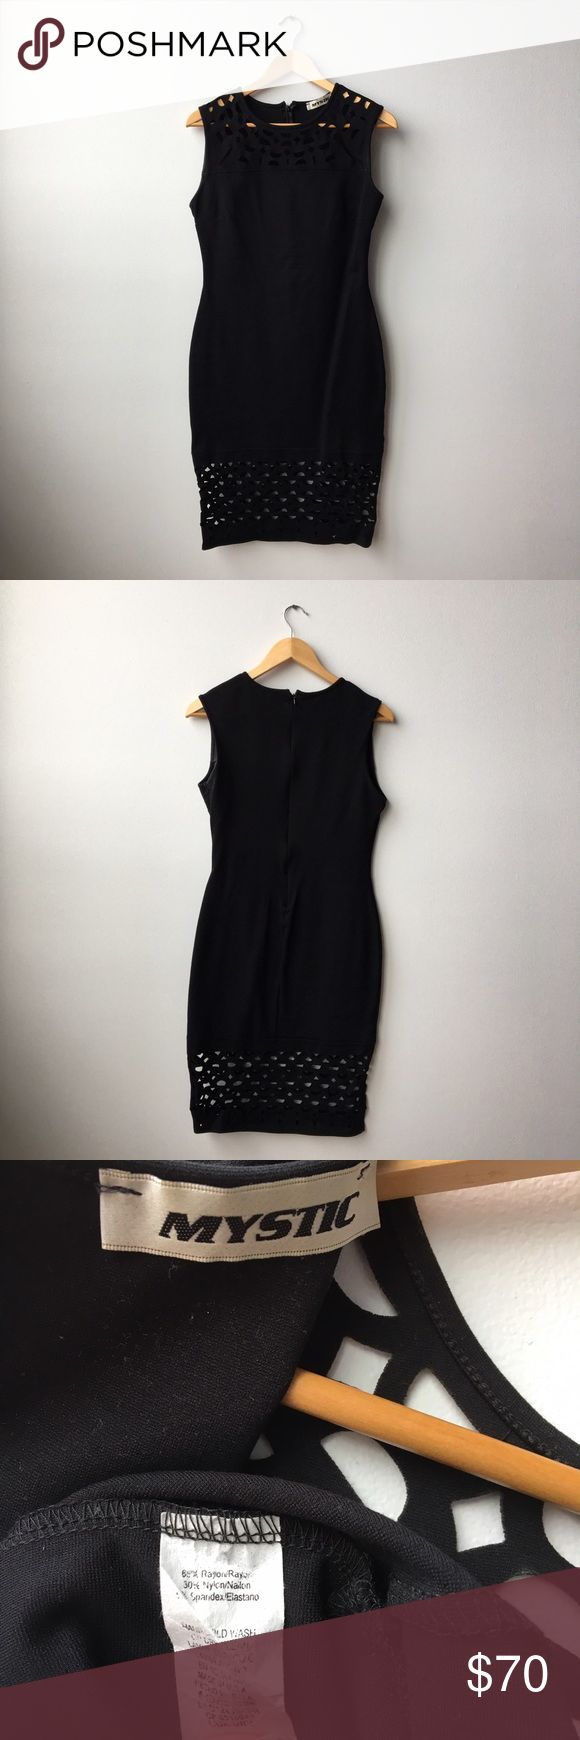 """ModCloth Body Con LBD Women's L Laser Cut Lace ModCloth """"Grand Gallery Dress in black"""" size L. 39"""" long from shoulder to bottom hem. Bottom Lace measures about 7"""". 65% rayon, 30% nylon, 5% spandex. Worn only once. Like new except for text on tag is partially rubbed off. Modcloth Dresses Midi"""